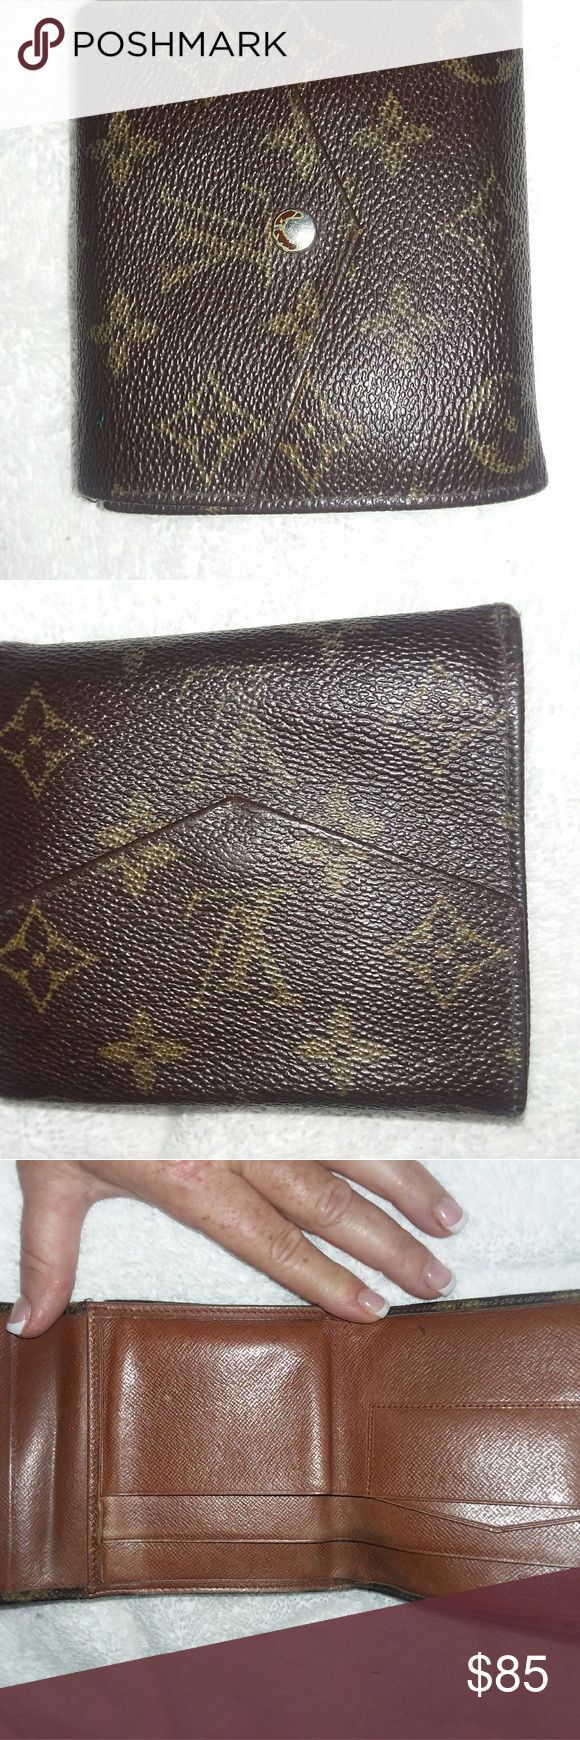 Vintage Louis vuitton mens wallet Well kept lots of life Louis Vuitton Bags Wallets